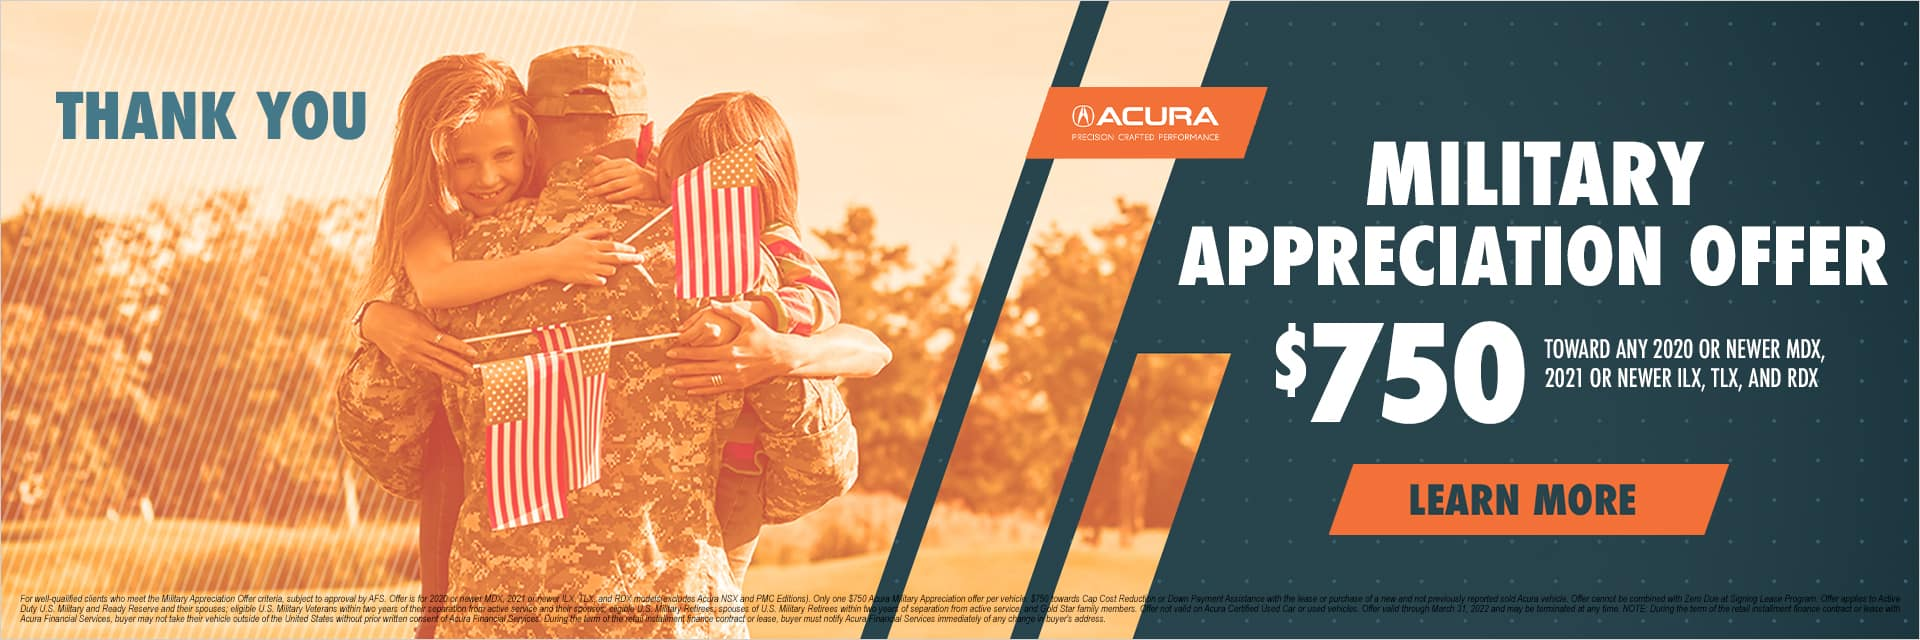 1920x640_CA_20005_Acura_2021 Update Acura Military Offer CTROT